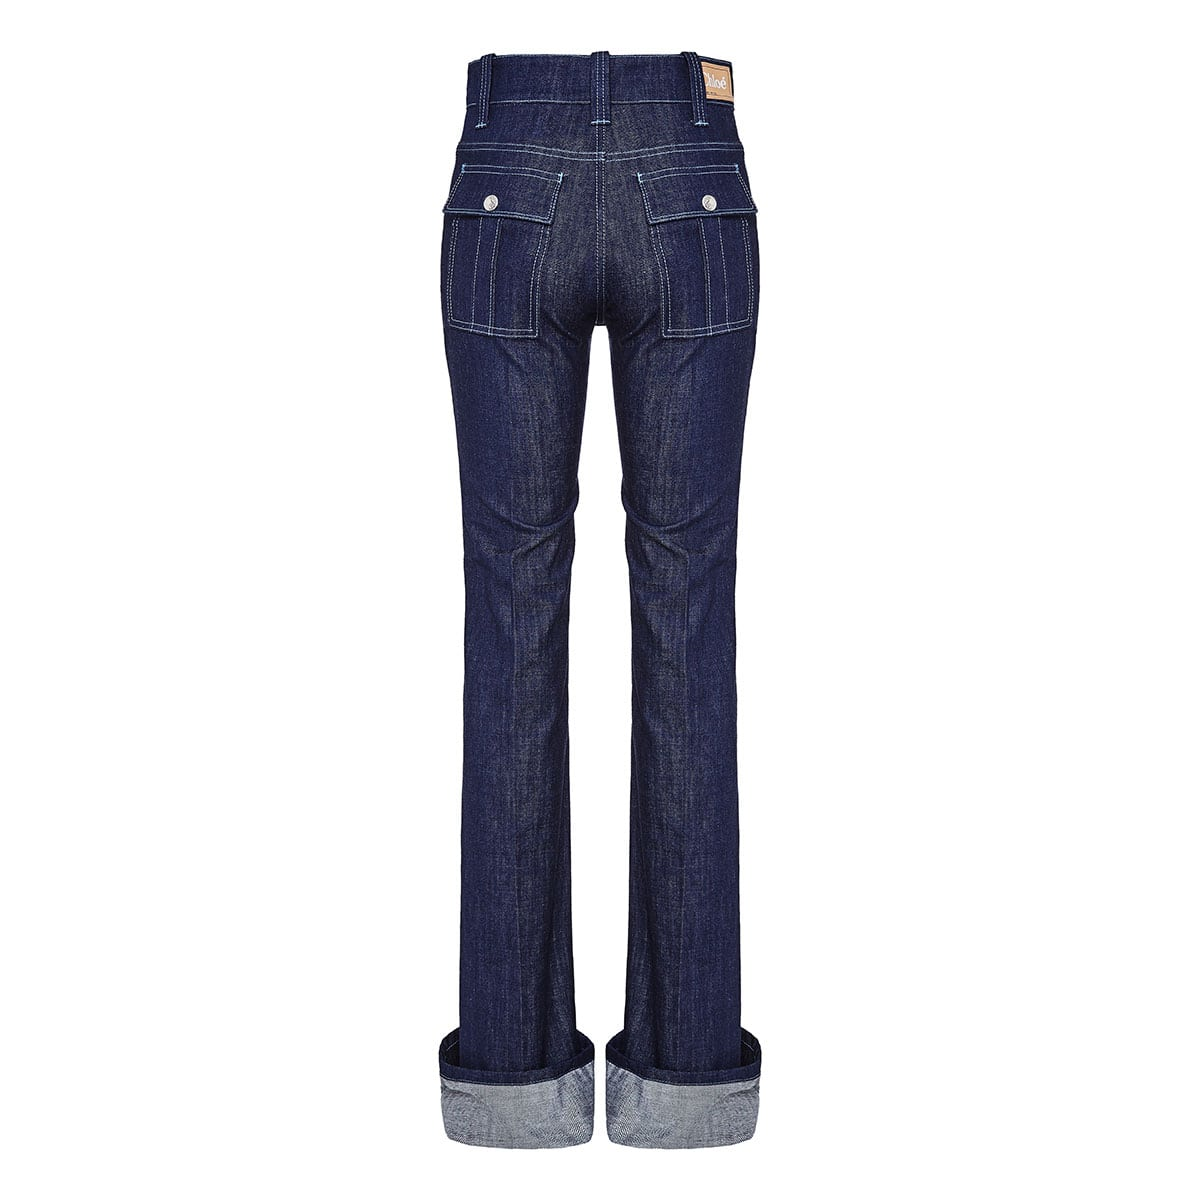 Flared jeans with folded hems